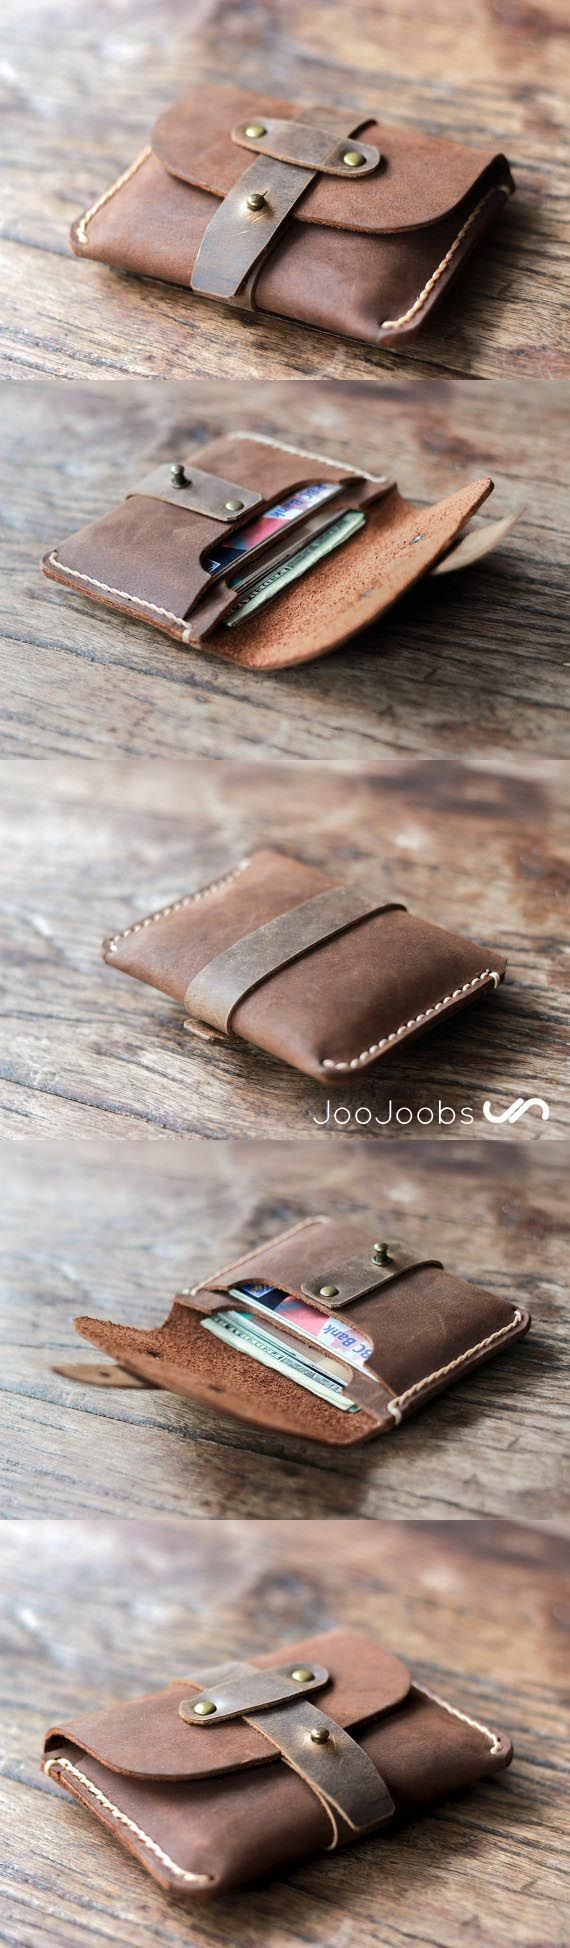 Bridesmaids Gifts, Wedding Gifts, Leather Credit Card Holder, The JooJoobs Original Treasure Chest Wallet – Listing #011